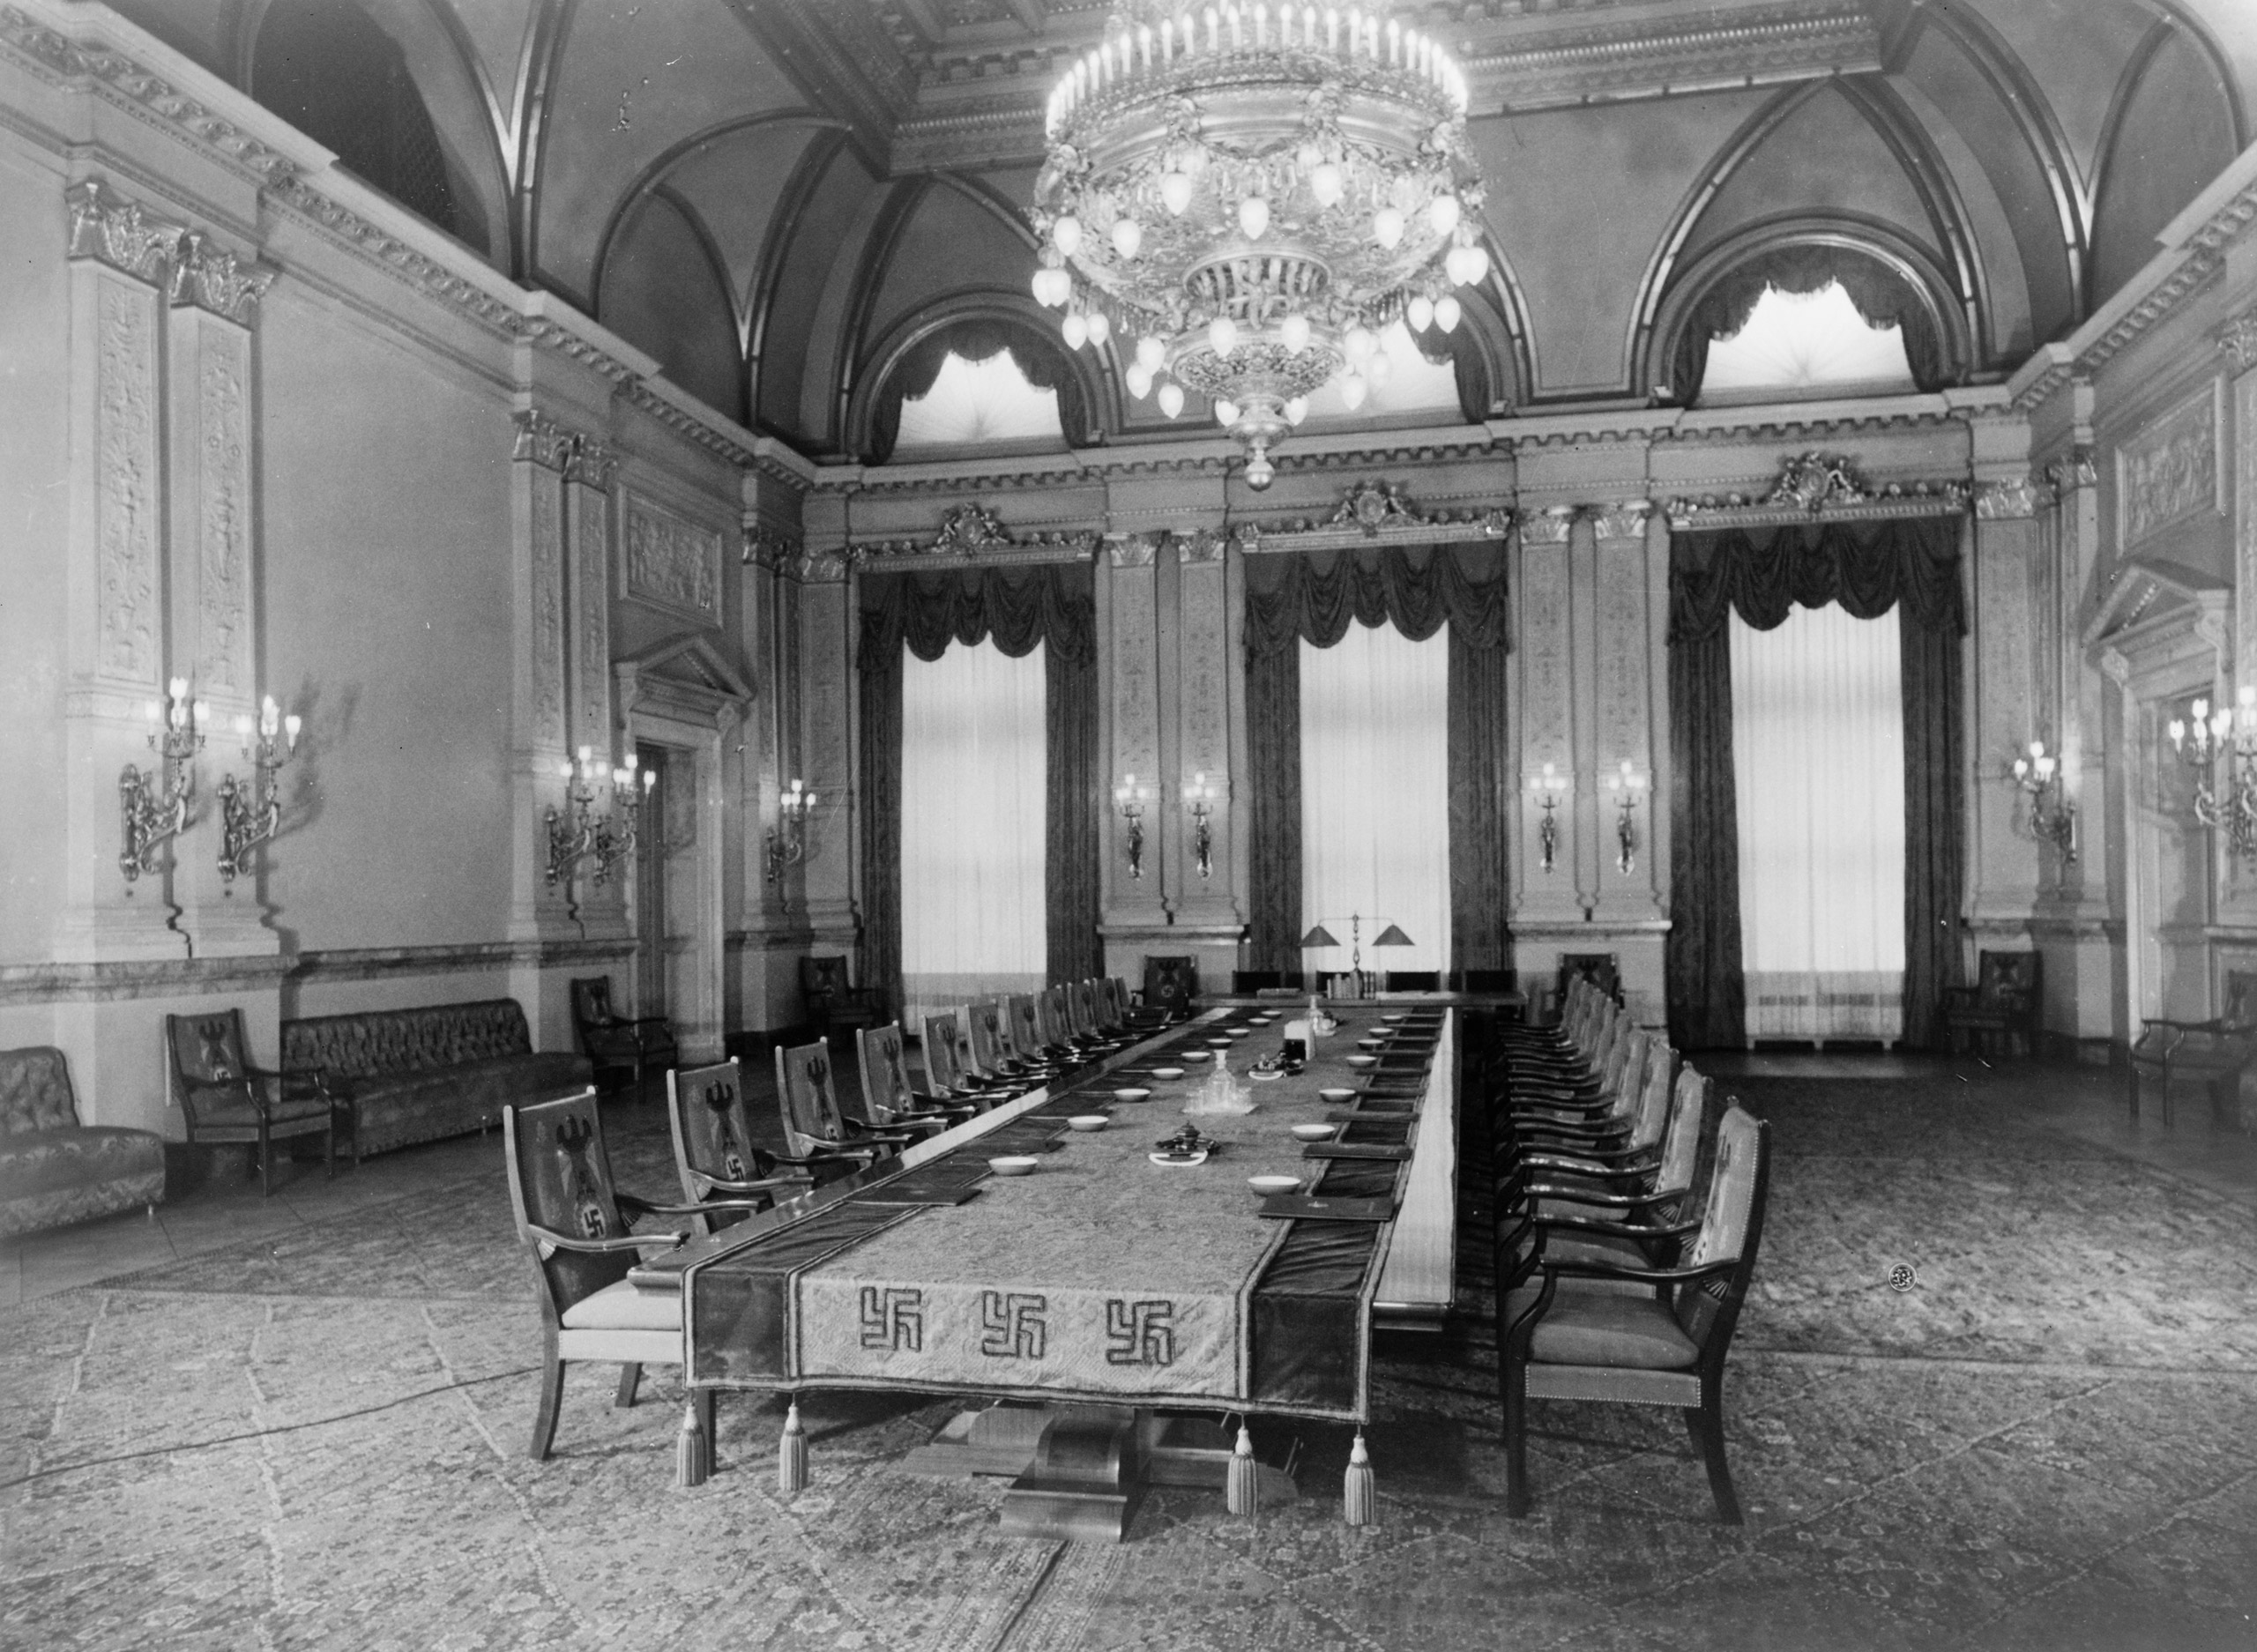 Heinrich Hoffmann, photograph of the Cabinet Room (formerly the Congress Hall) on the second floor of the Old Chancellery in Berlin after the renovation by the Atelier Troost, c. 1934. On January 30, 1933, Hitler had been sworn in as chancellor by President Hindenburg in this room.